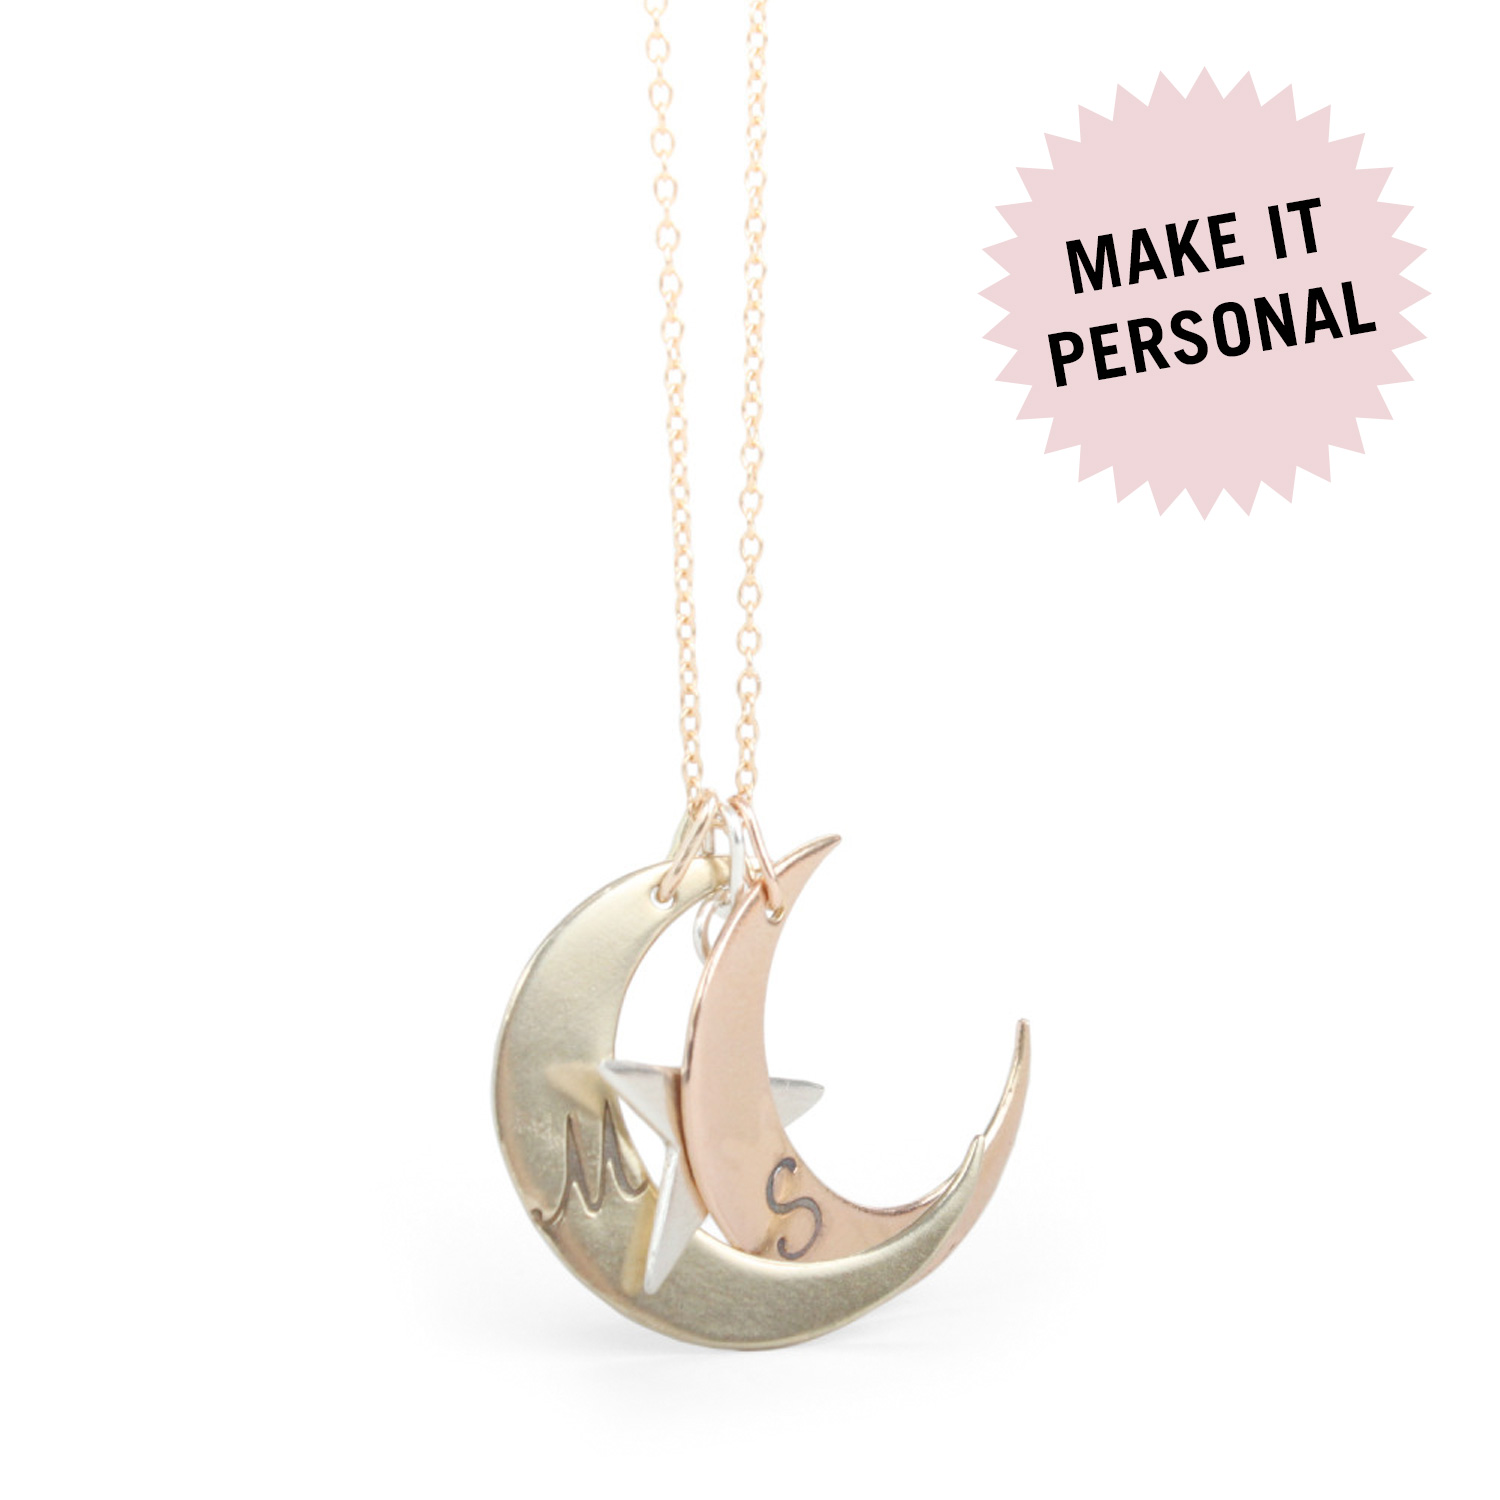 personal joe necklace product yours equilibrium a personalised personally davies